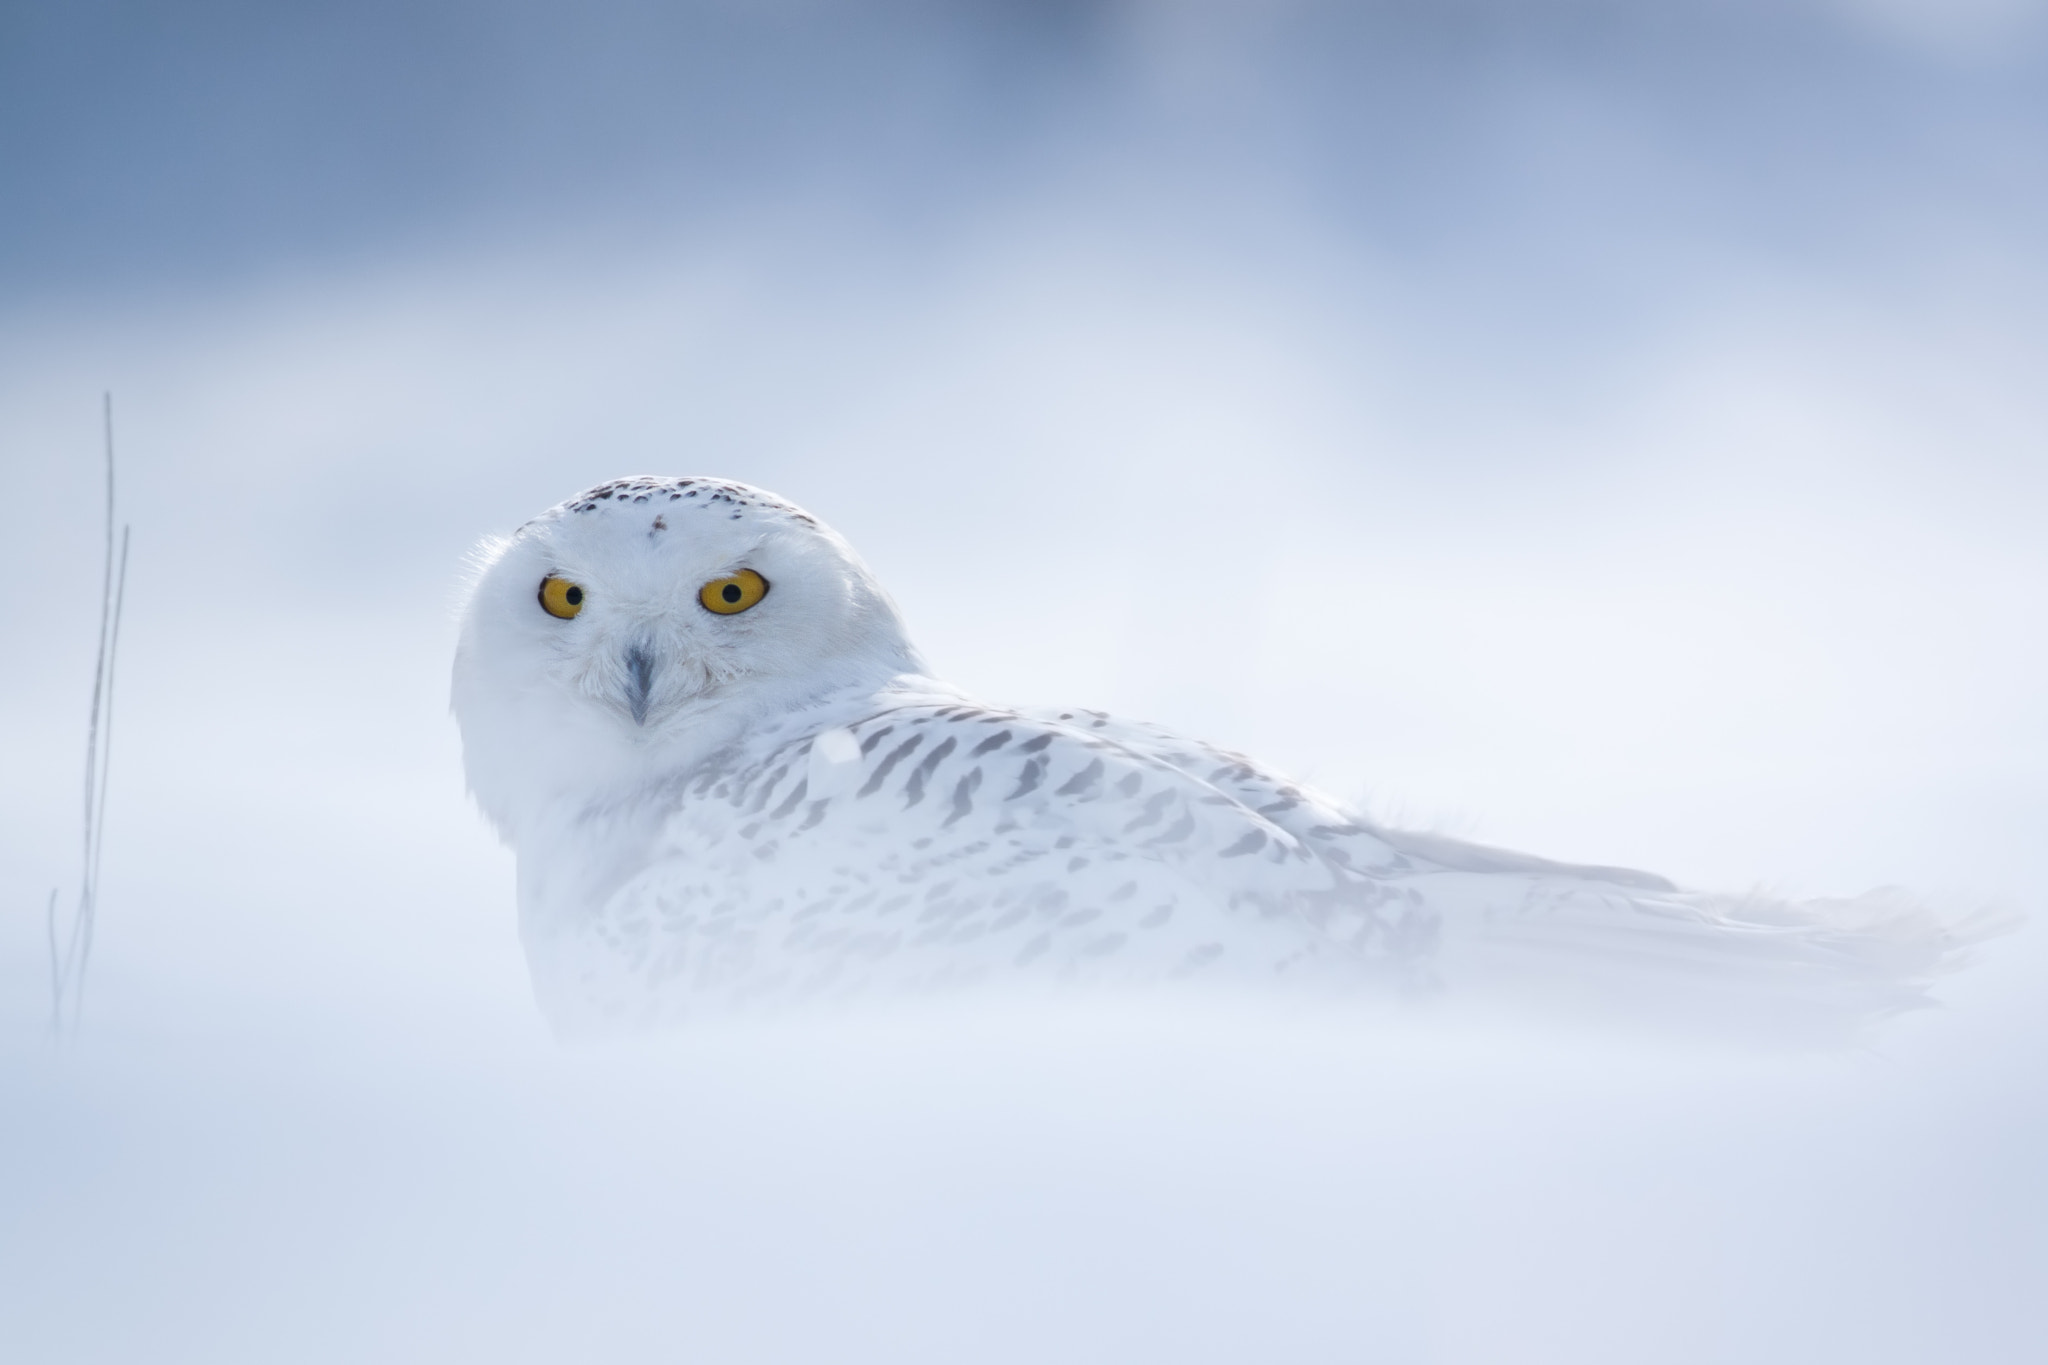 Photograph Snowy owl by Vlado Kucharovic on 500px